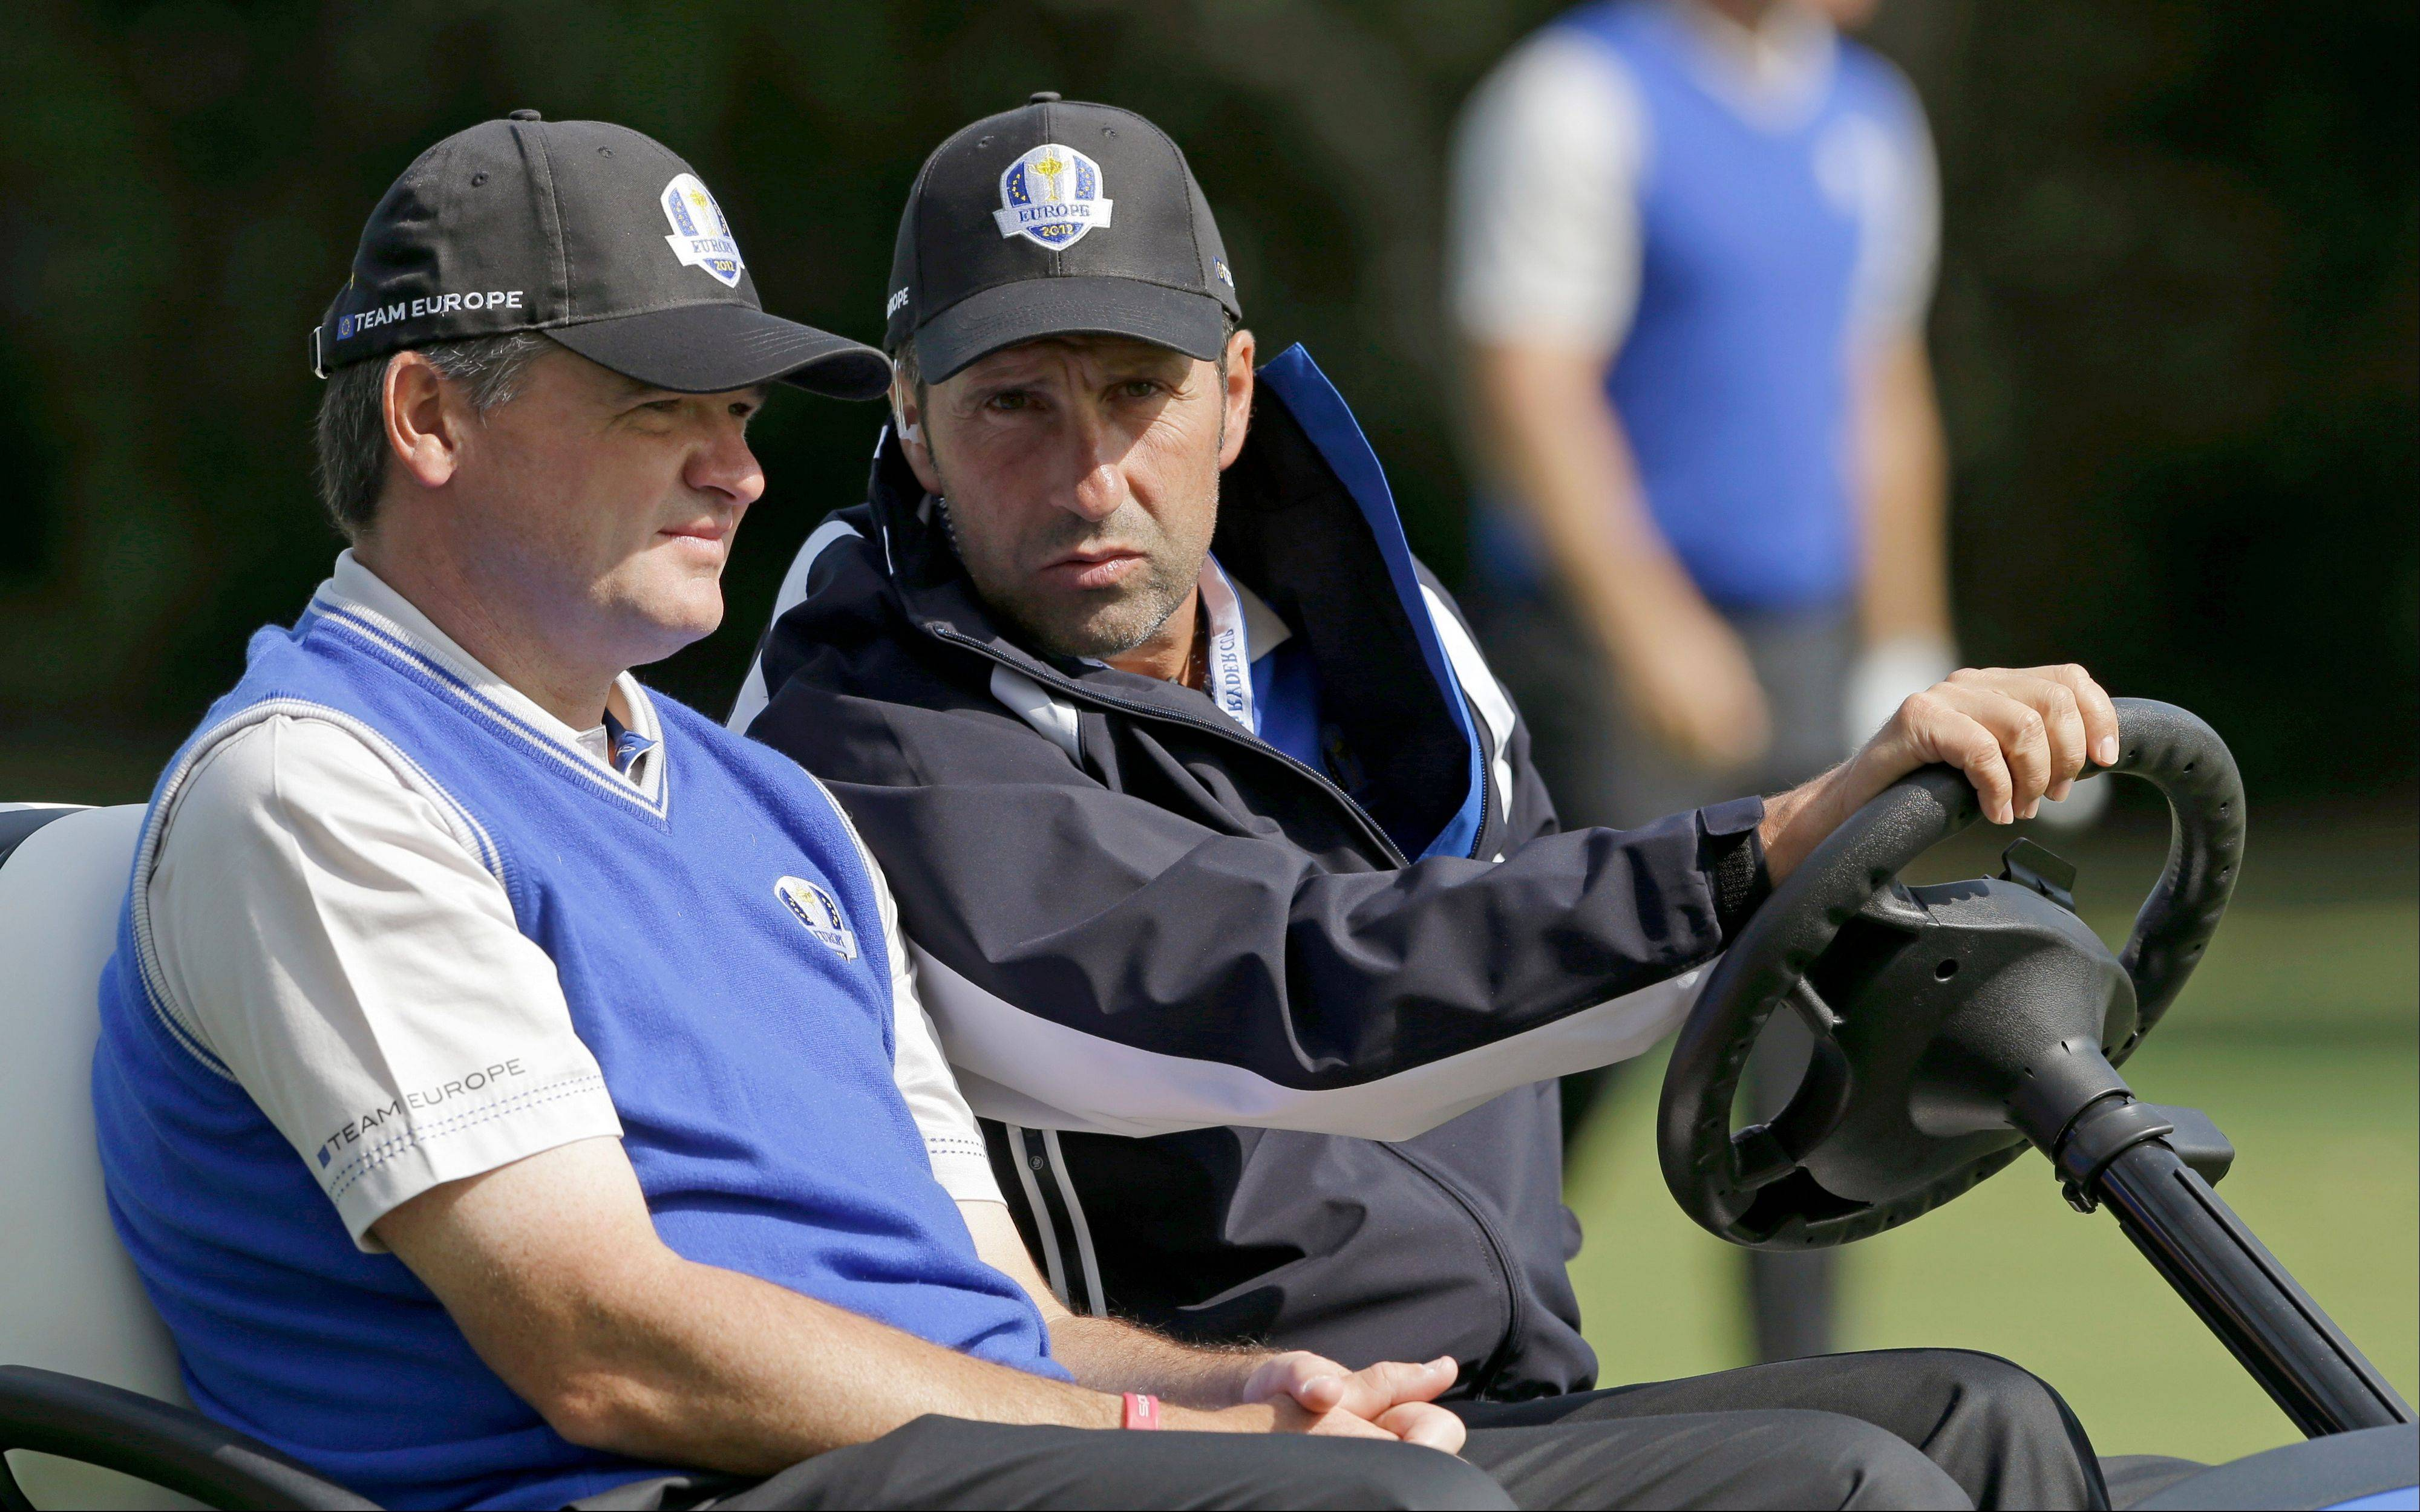 European team captain Jose Maria Olazabal talks to Paul Lawrie on the sixth hole Wednesday during a practice round at the Ryder Cup at Medinah Country Club.